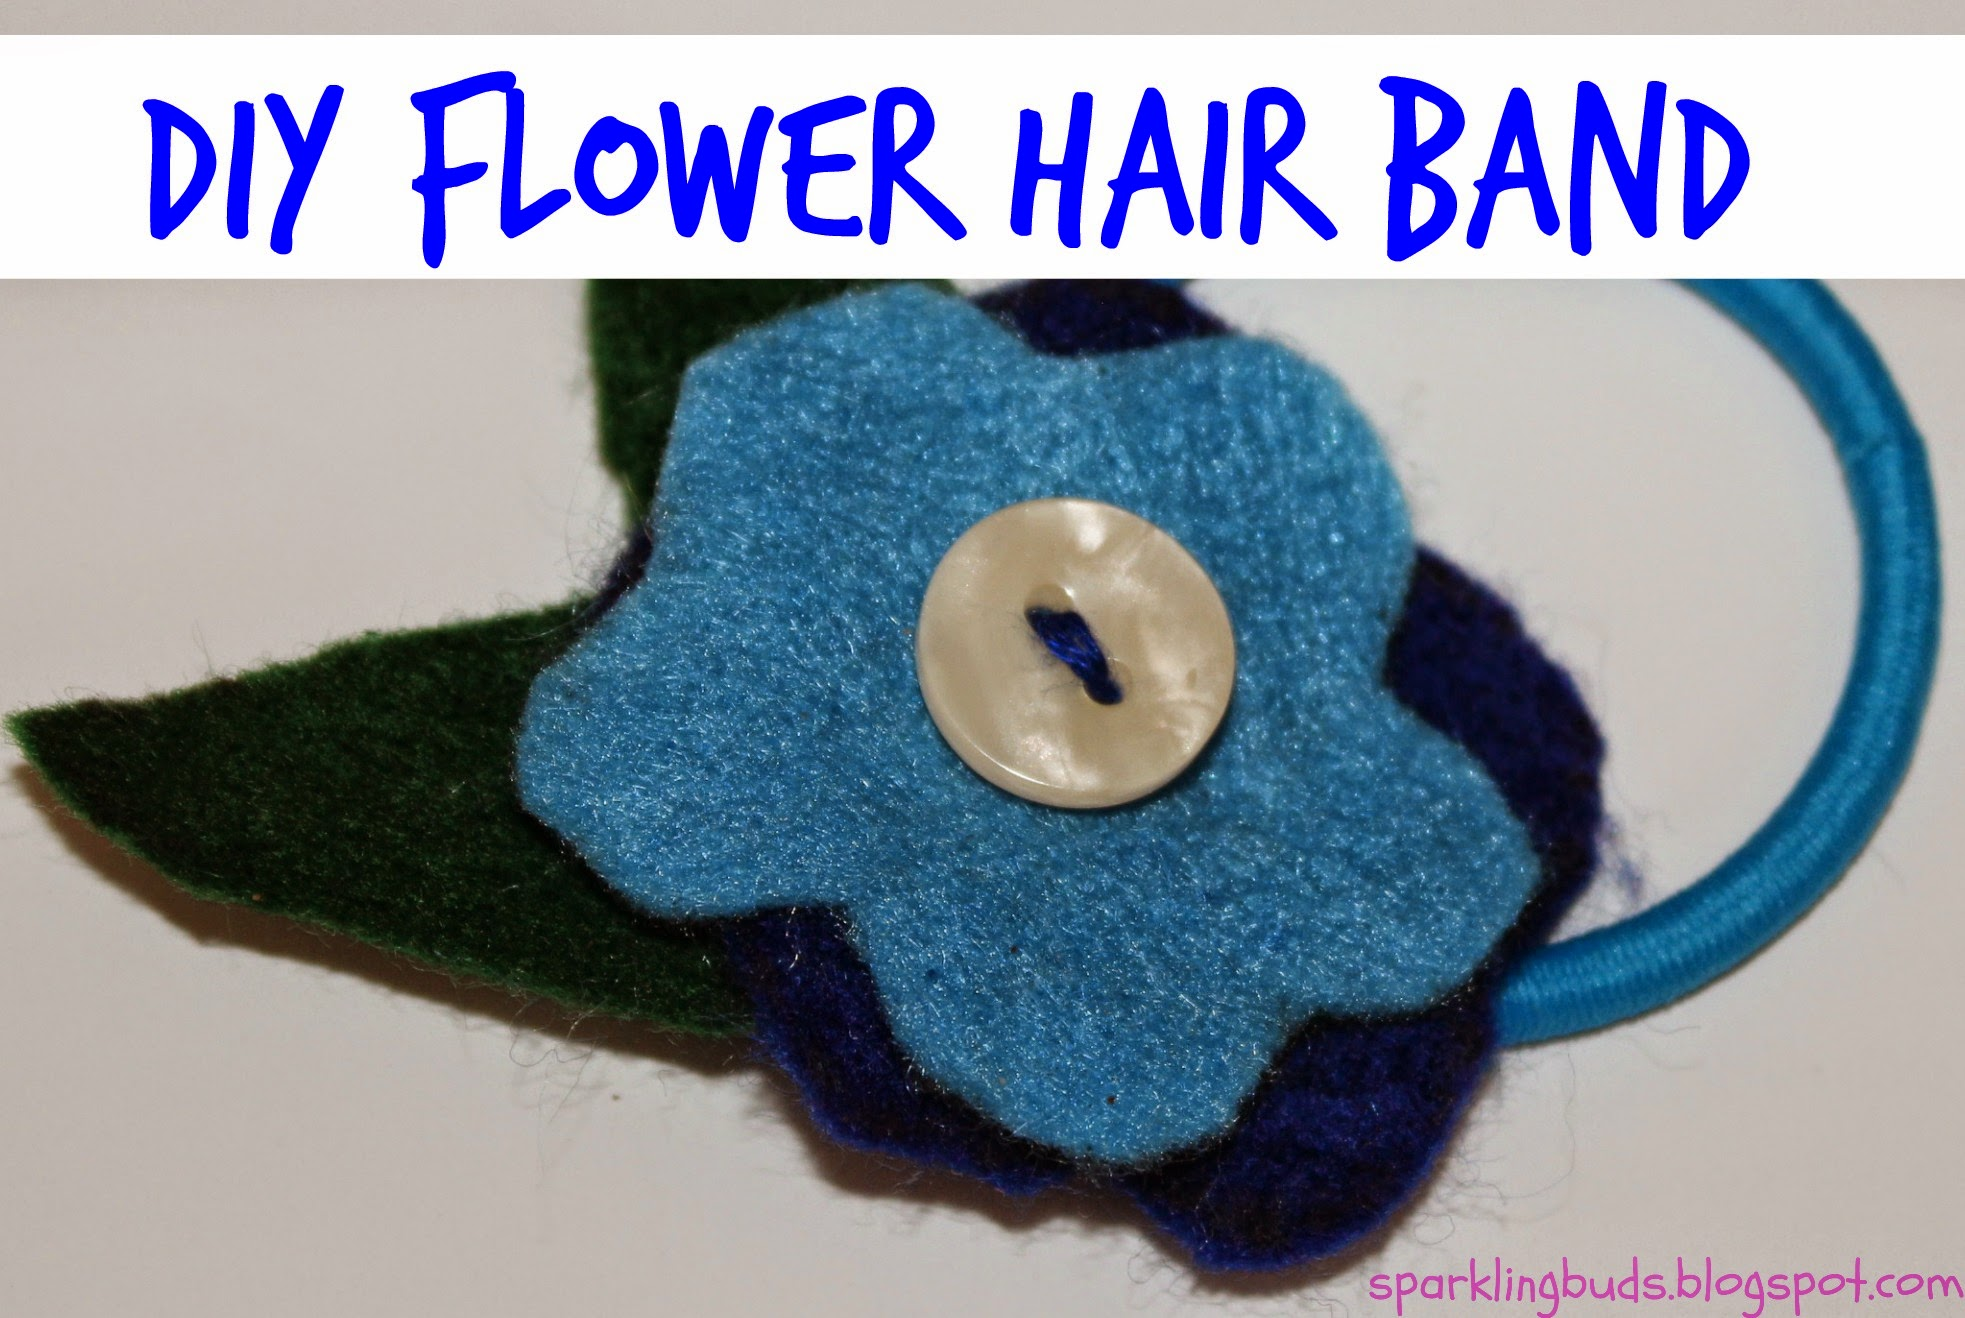 Diy Flower Hair Rubber Band Sparklingbuds